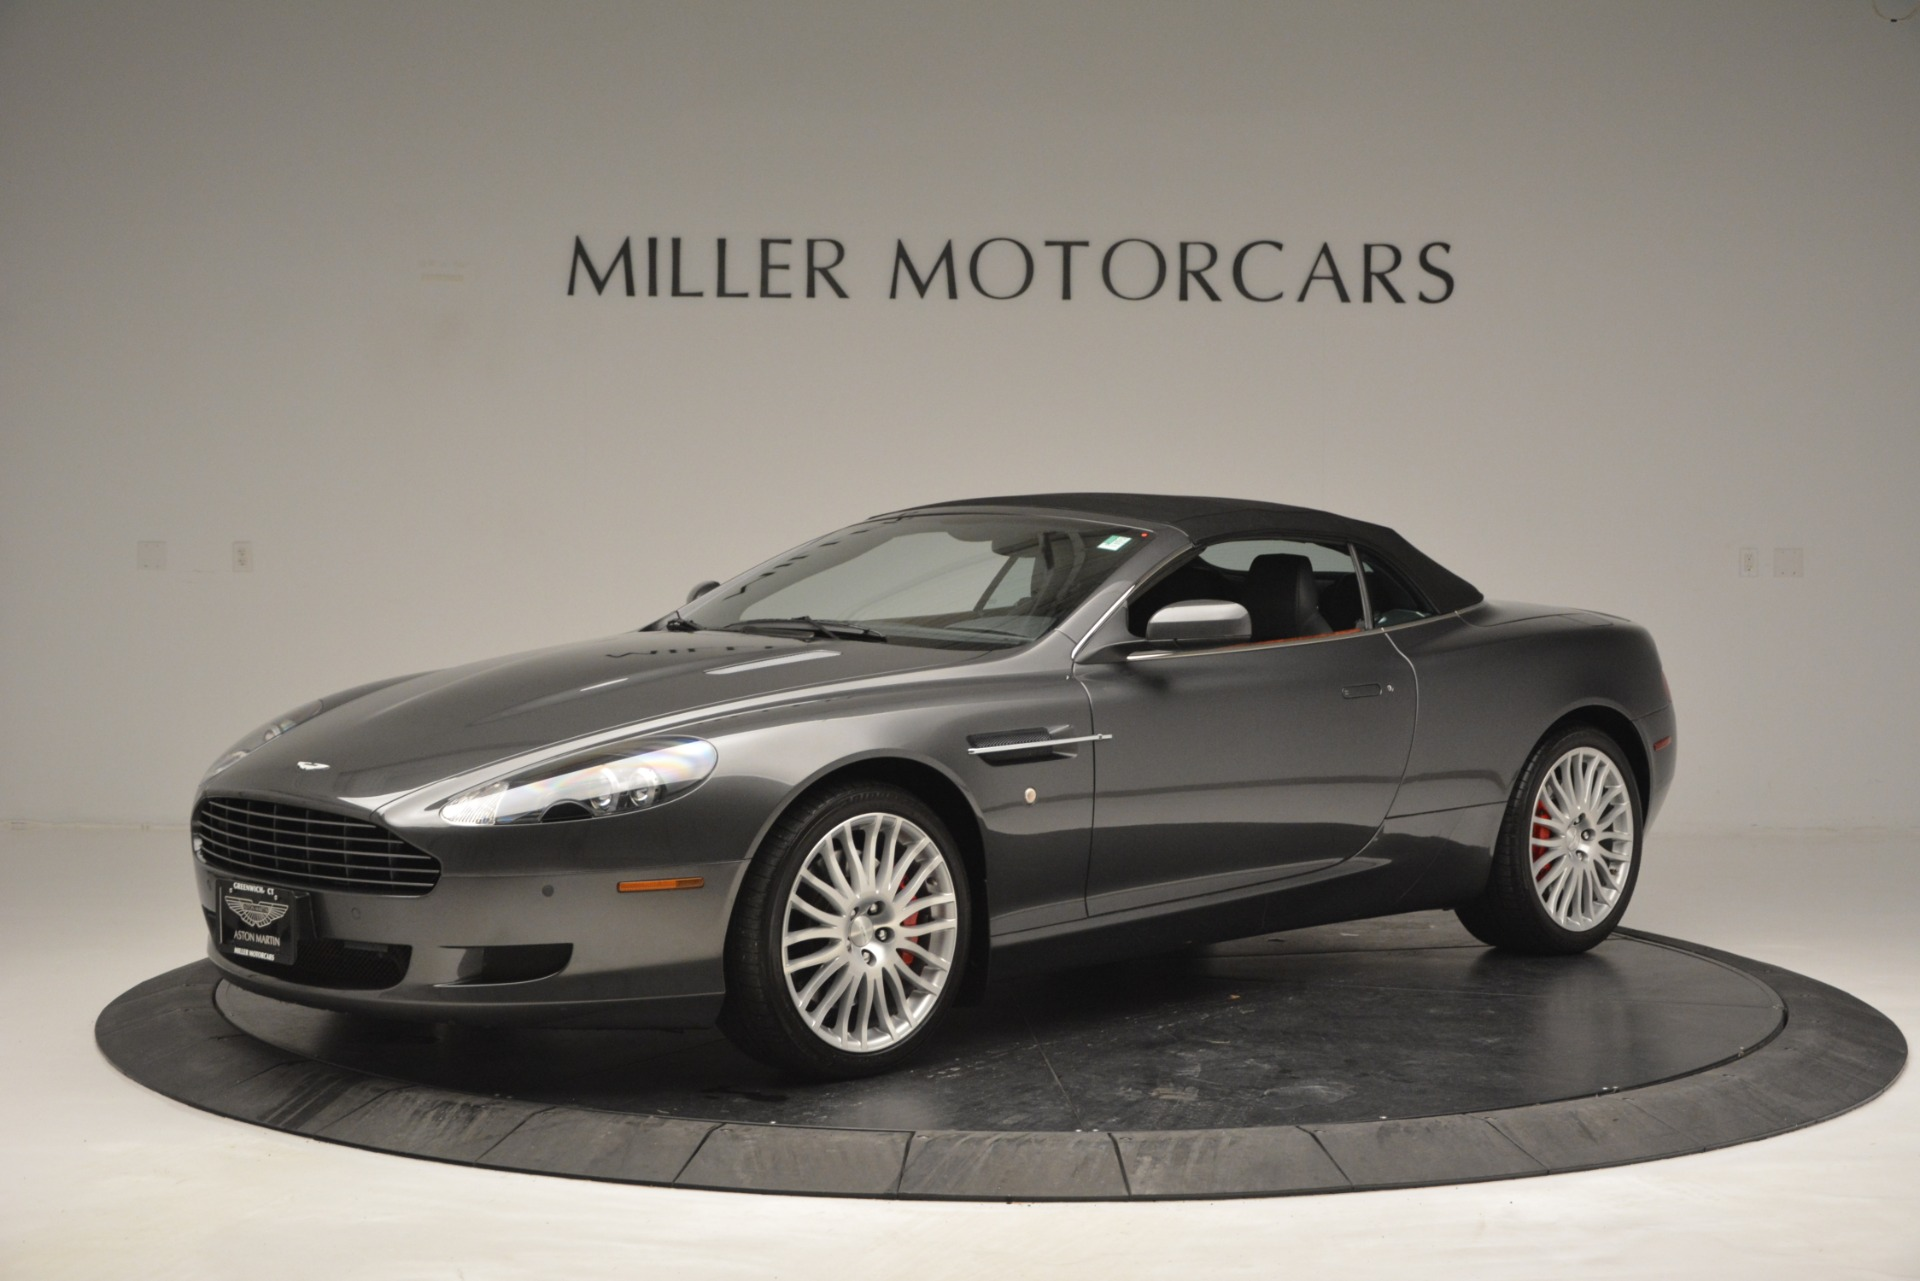 Used 2009 Aston Martin DB9 Convertible For Sale In Westport, CT 2930_p18